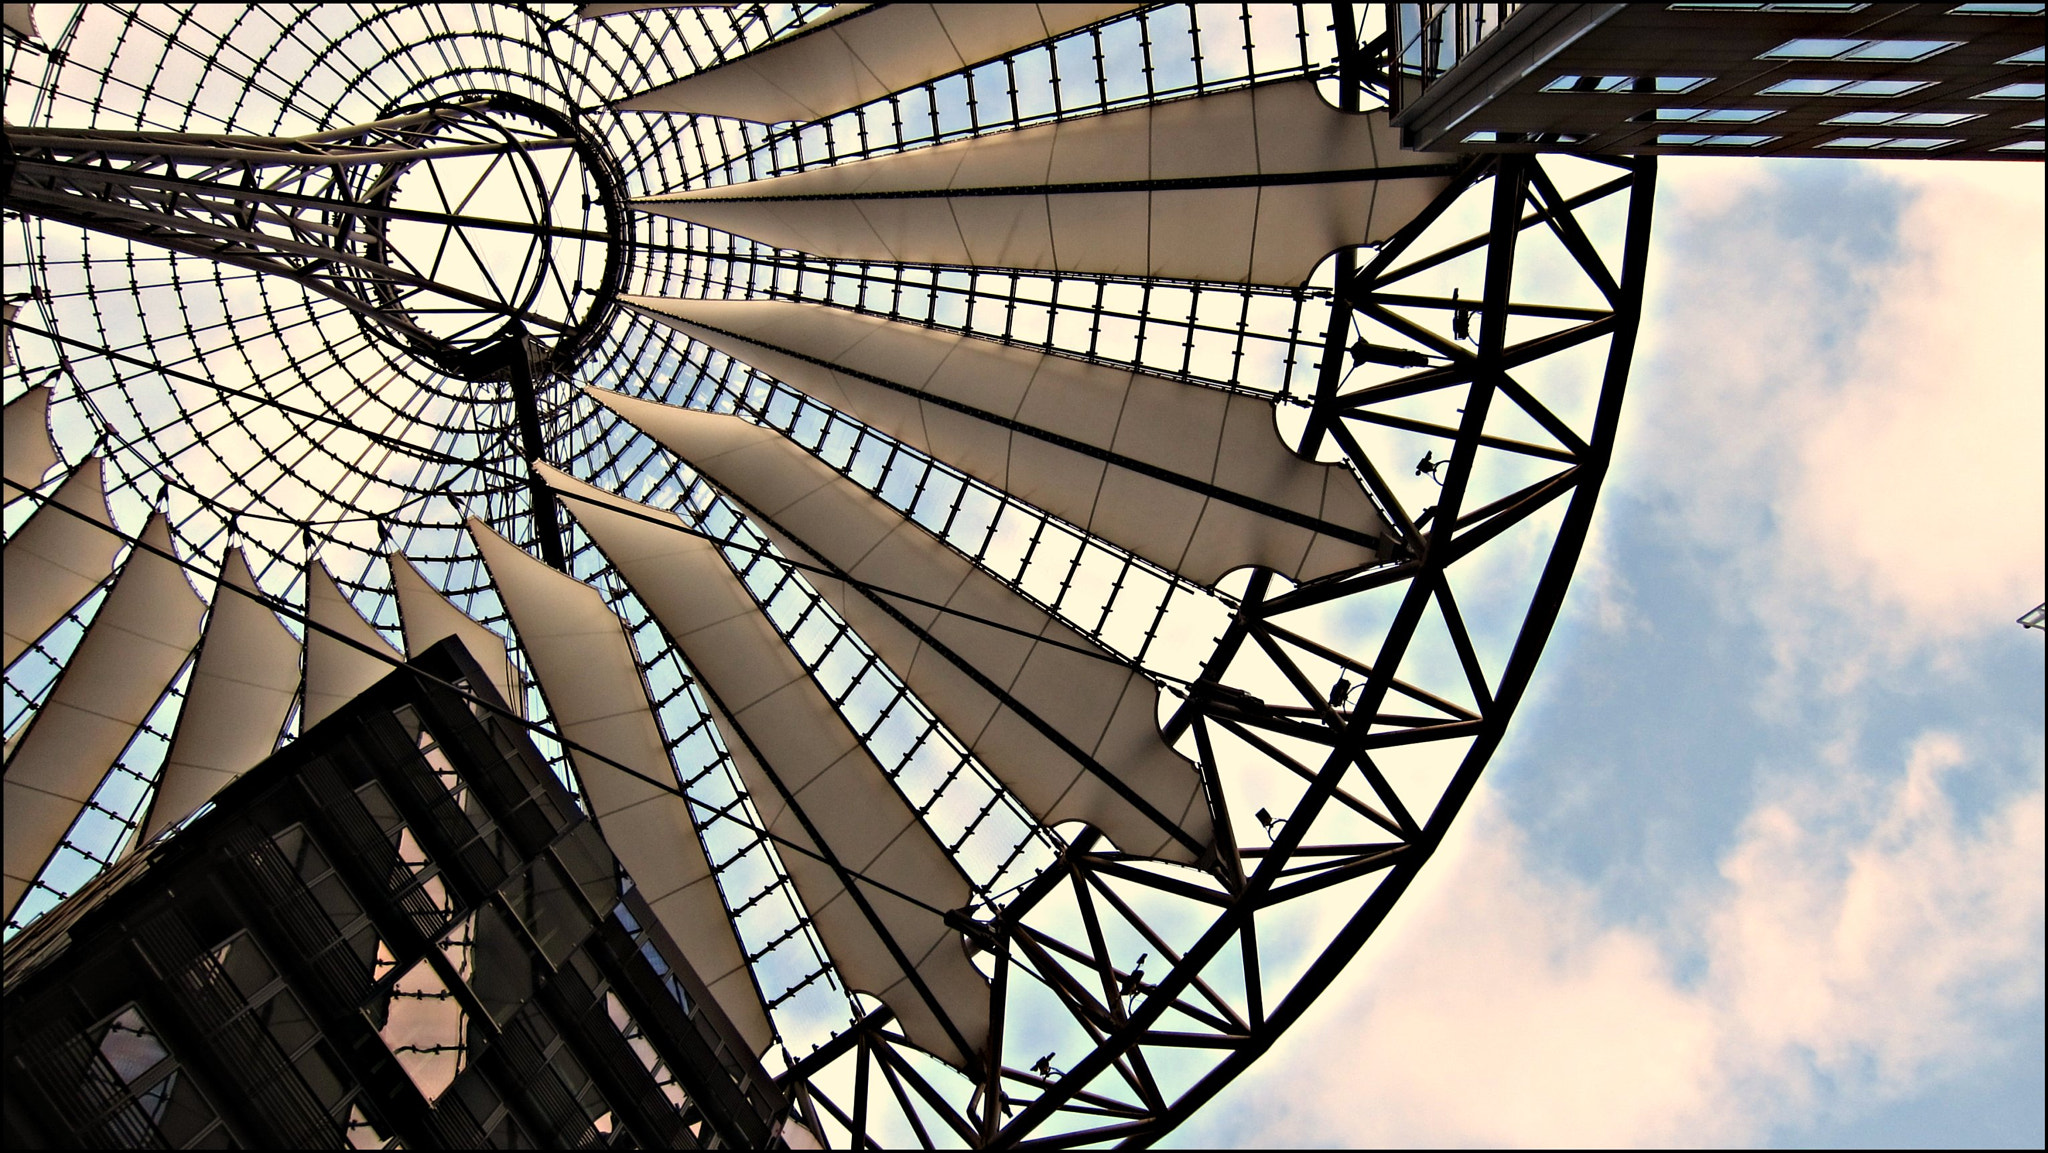 Photograph Sony Centre Wings by Øle Gulichsson on 500px